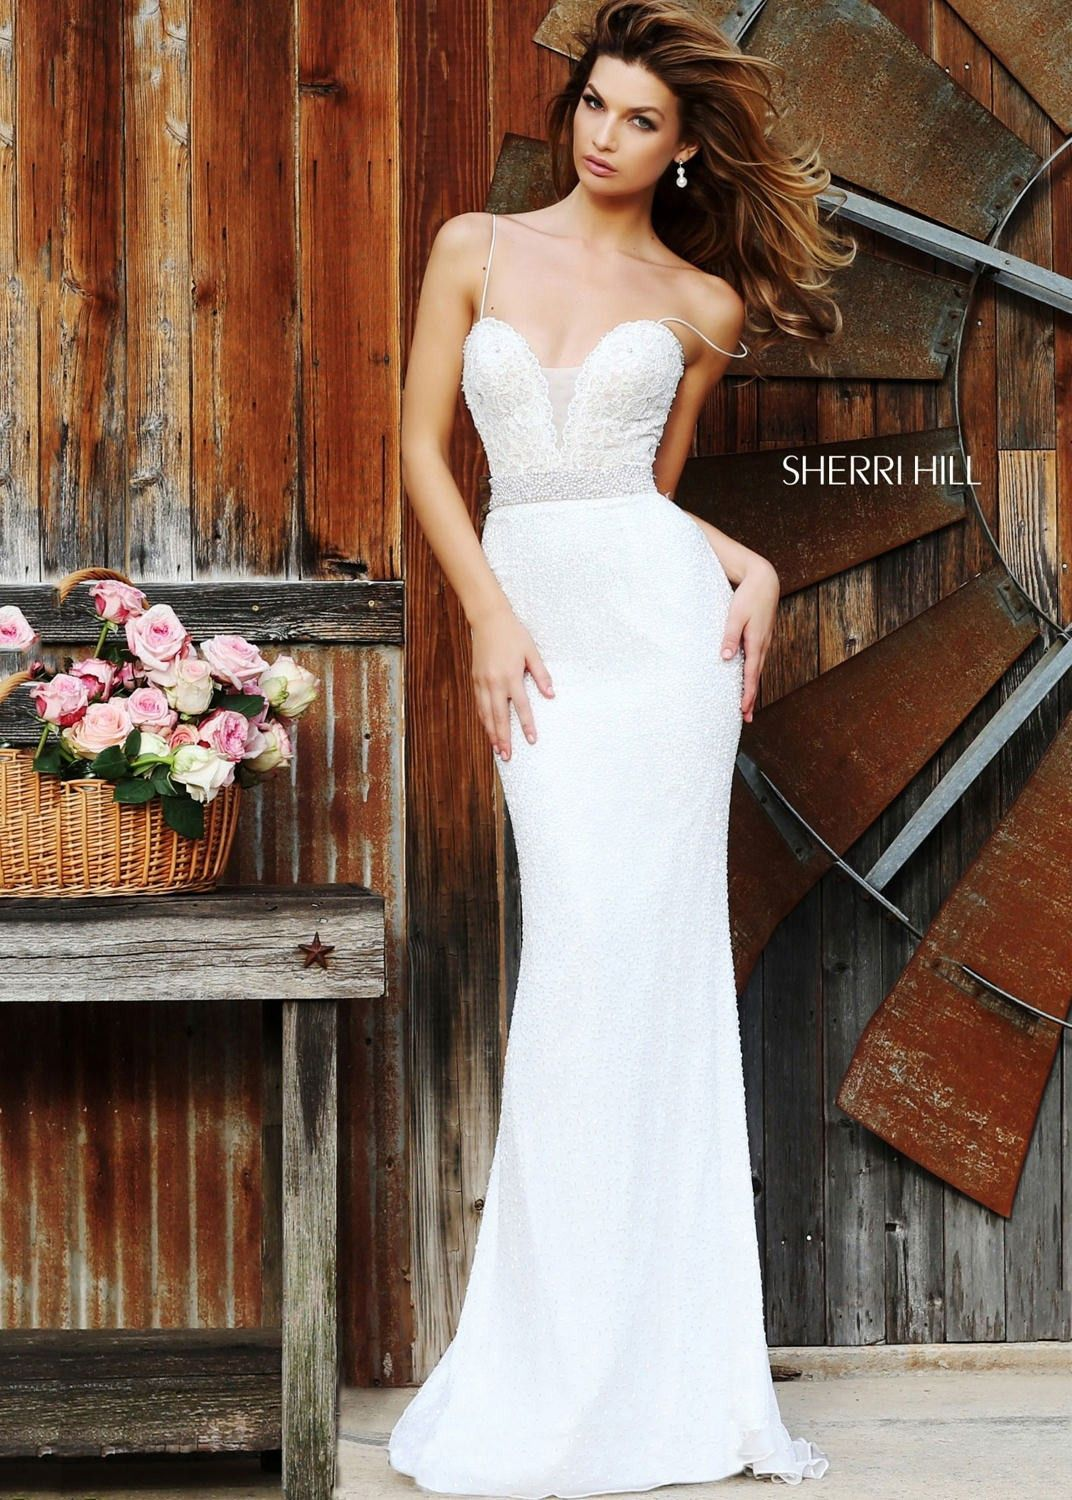 Sherri Hill Fitted Ivory Dress 11260 - In the red